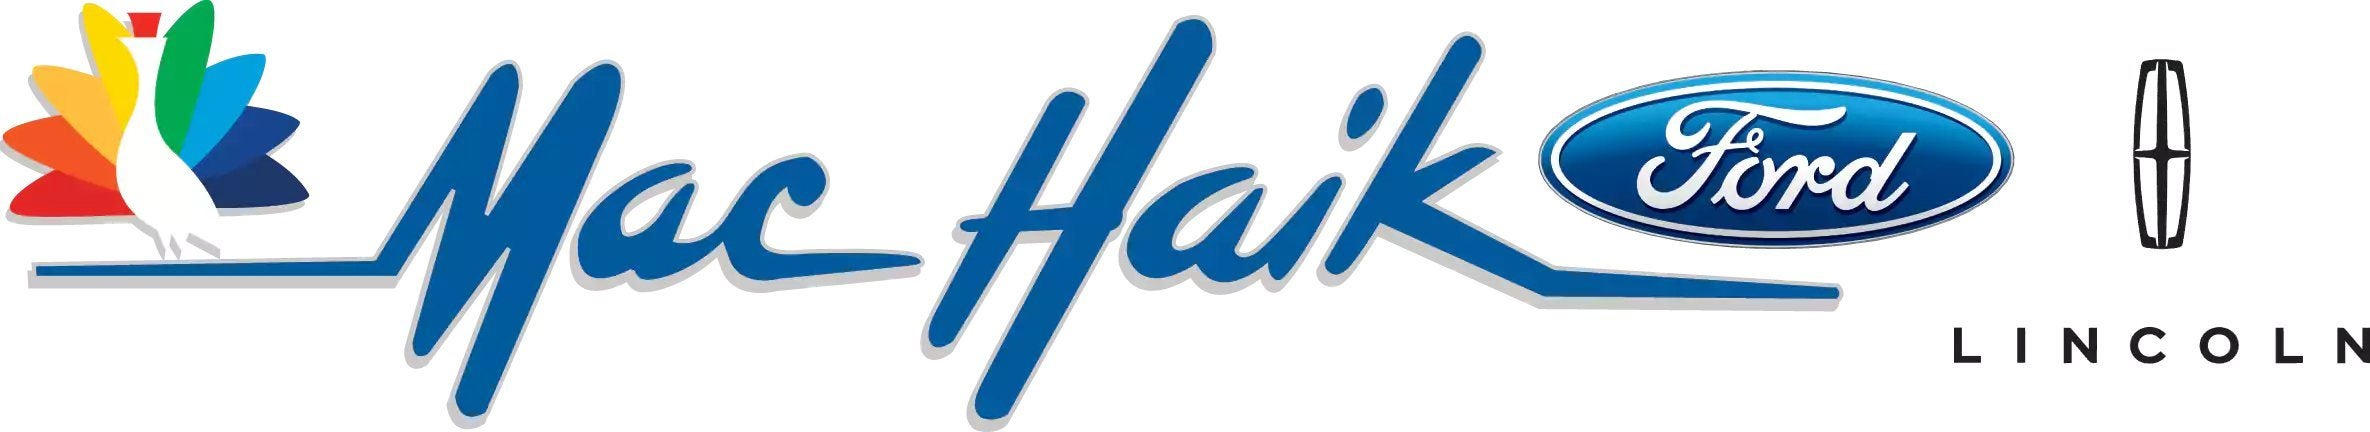 Ford Dealer in Victoria, TX | Used Cars Victoria | Mac Haik Ford Lincoln